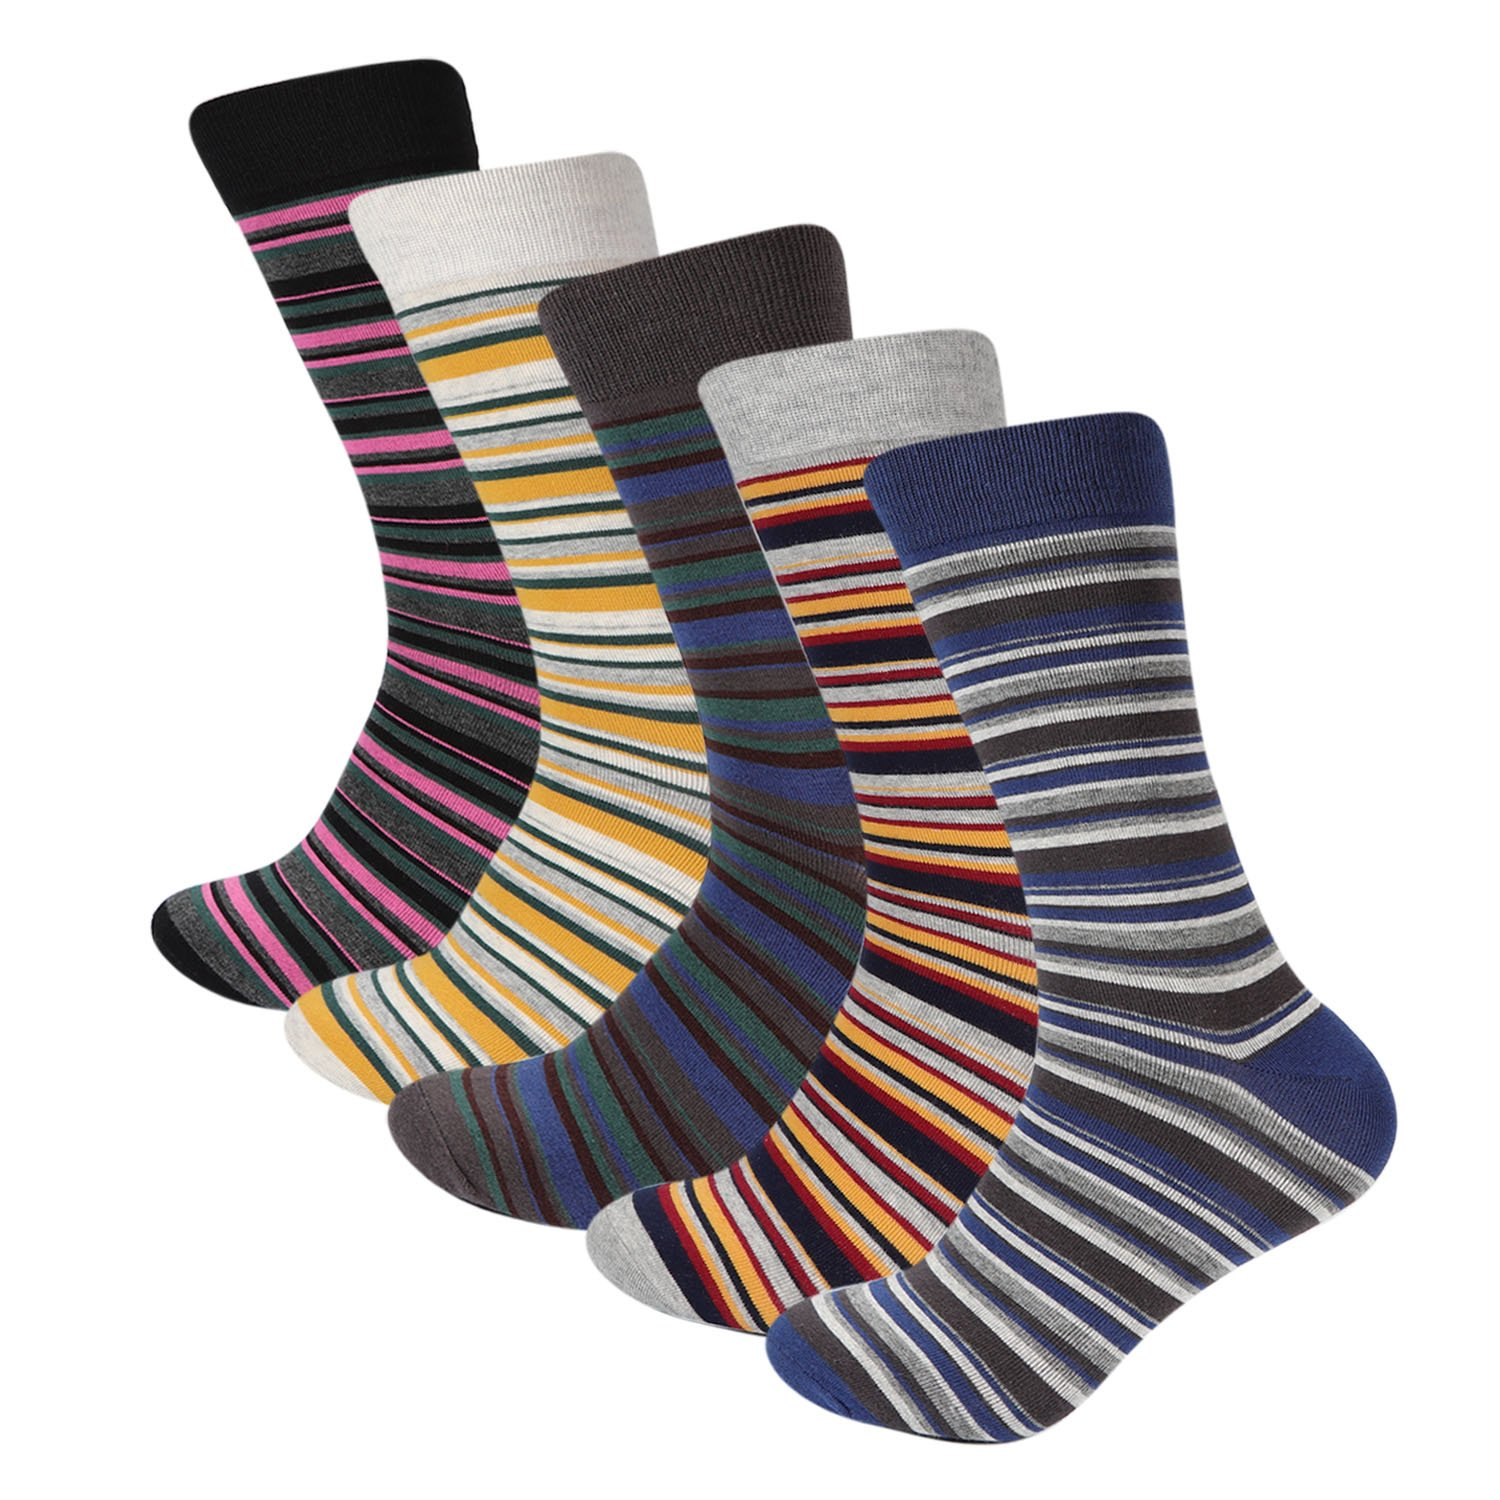 Mens Crew Dress Cotton Socks 5 Color Pack Hoyols